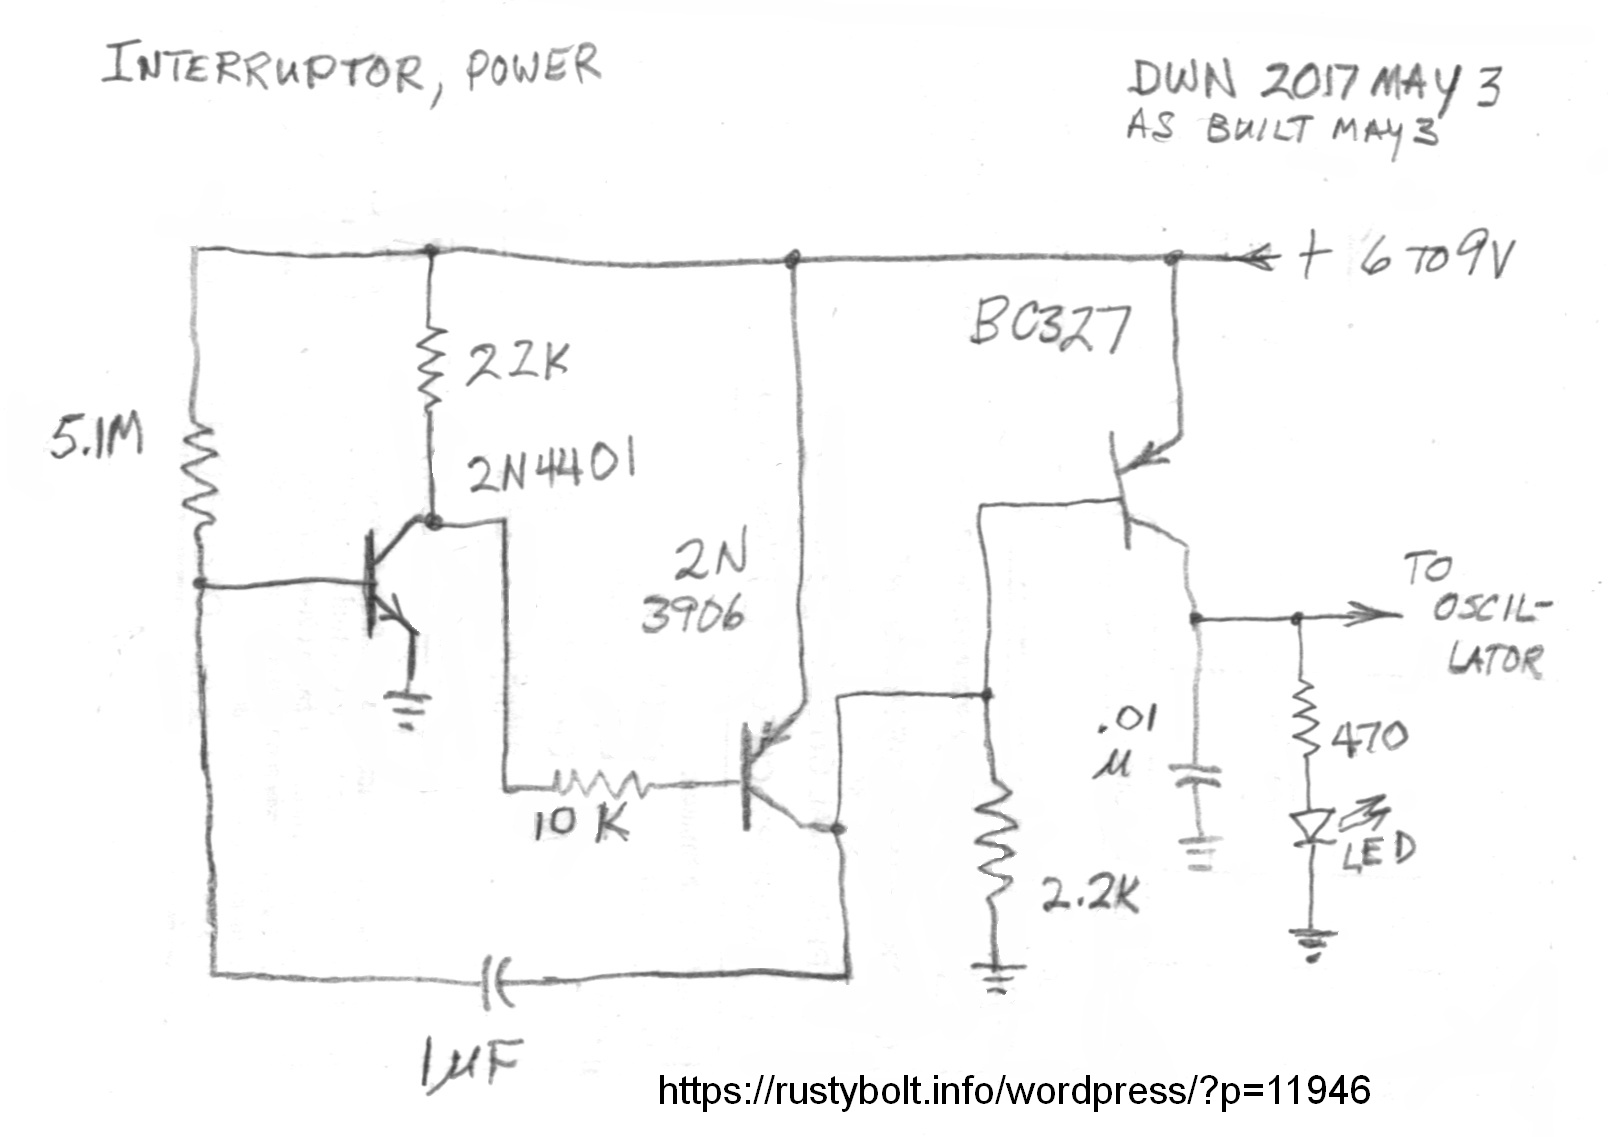 Wordpress Page 23 Electronics Stuff A Lot Wiring Diagram As Well Npn And Pnp Transistor On Prox I Built The Circuit Put Led Output Found That It Was Always Off Unless Touched Base Of First